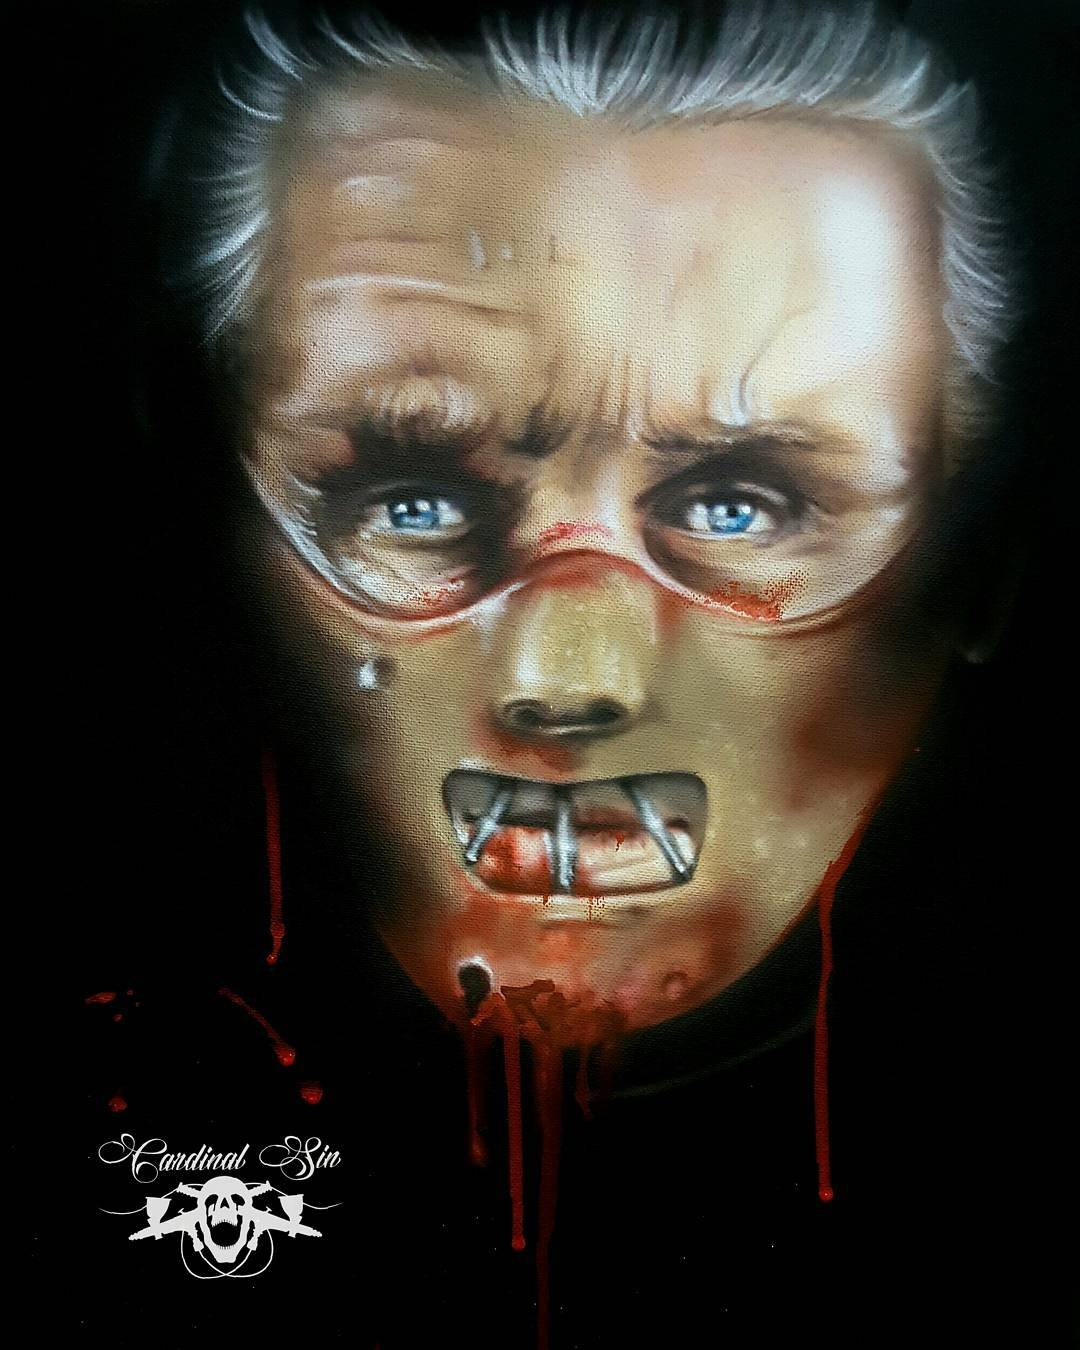 07-Hannibal-Lecter-Sir-Anthony-Hopkins-Courtney-Georghiou-Art-Drawn-and-Airbrushed-and-Painted-in-an-Eclectic-Mix-www-designstack-co